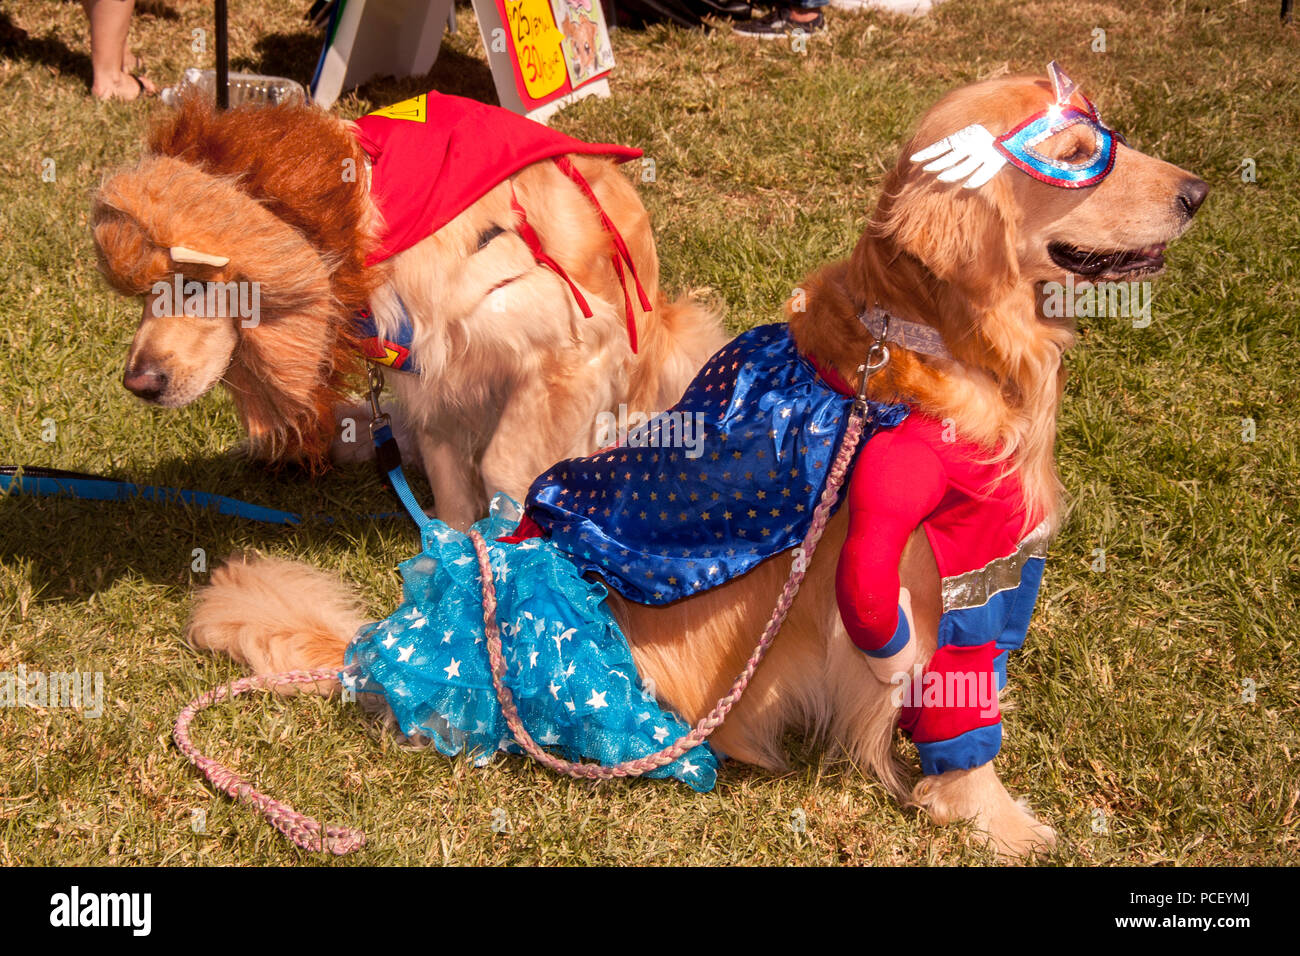 Golden retrievers costumed as a super hero and a lion get ready to compete in the costume parade at a Huntington Beach, CA, dog show.  (Photo by Spencer Grant) Stock Photo